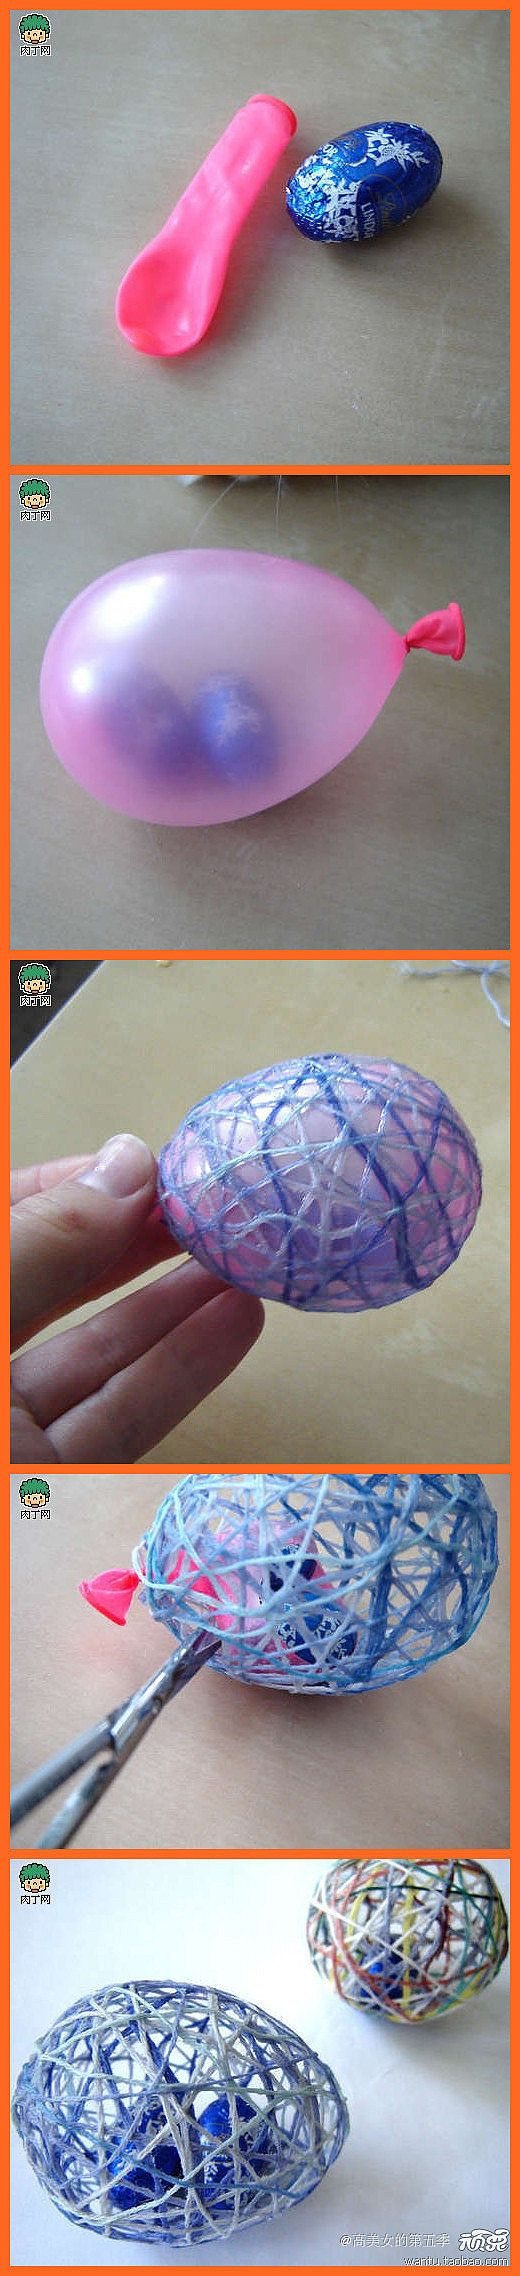 neat craft for Easter, how to get the candy in the egg